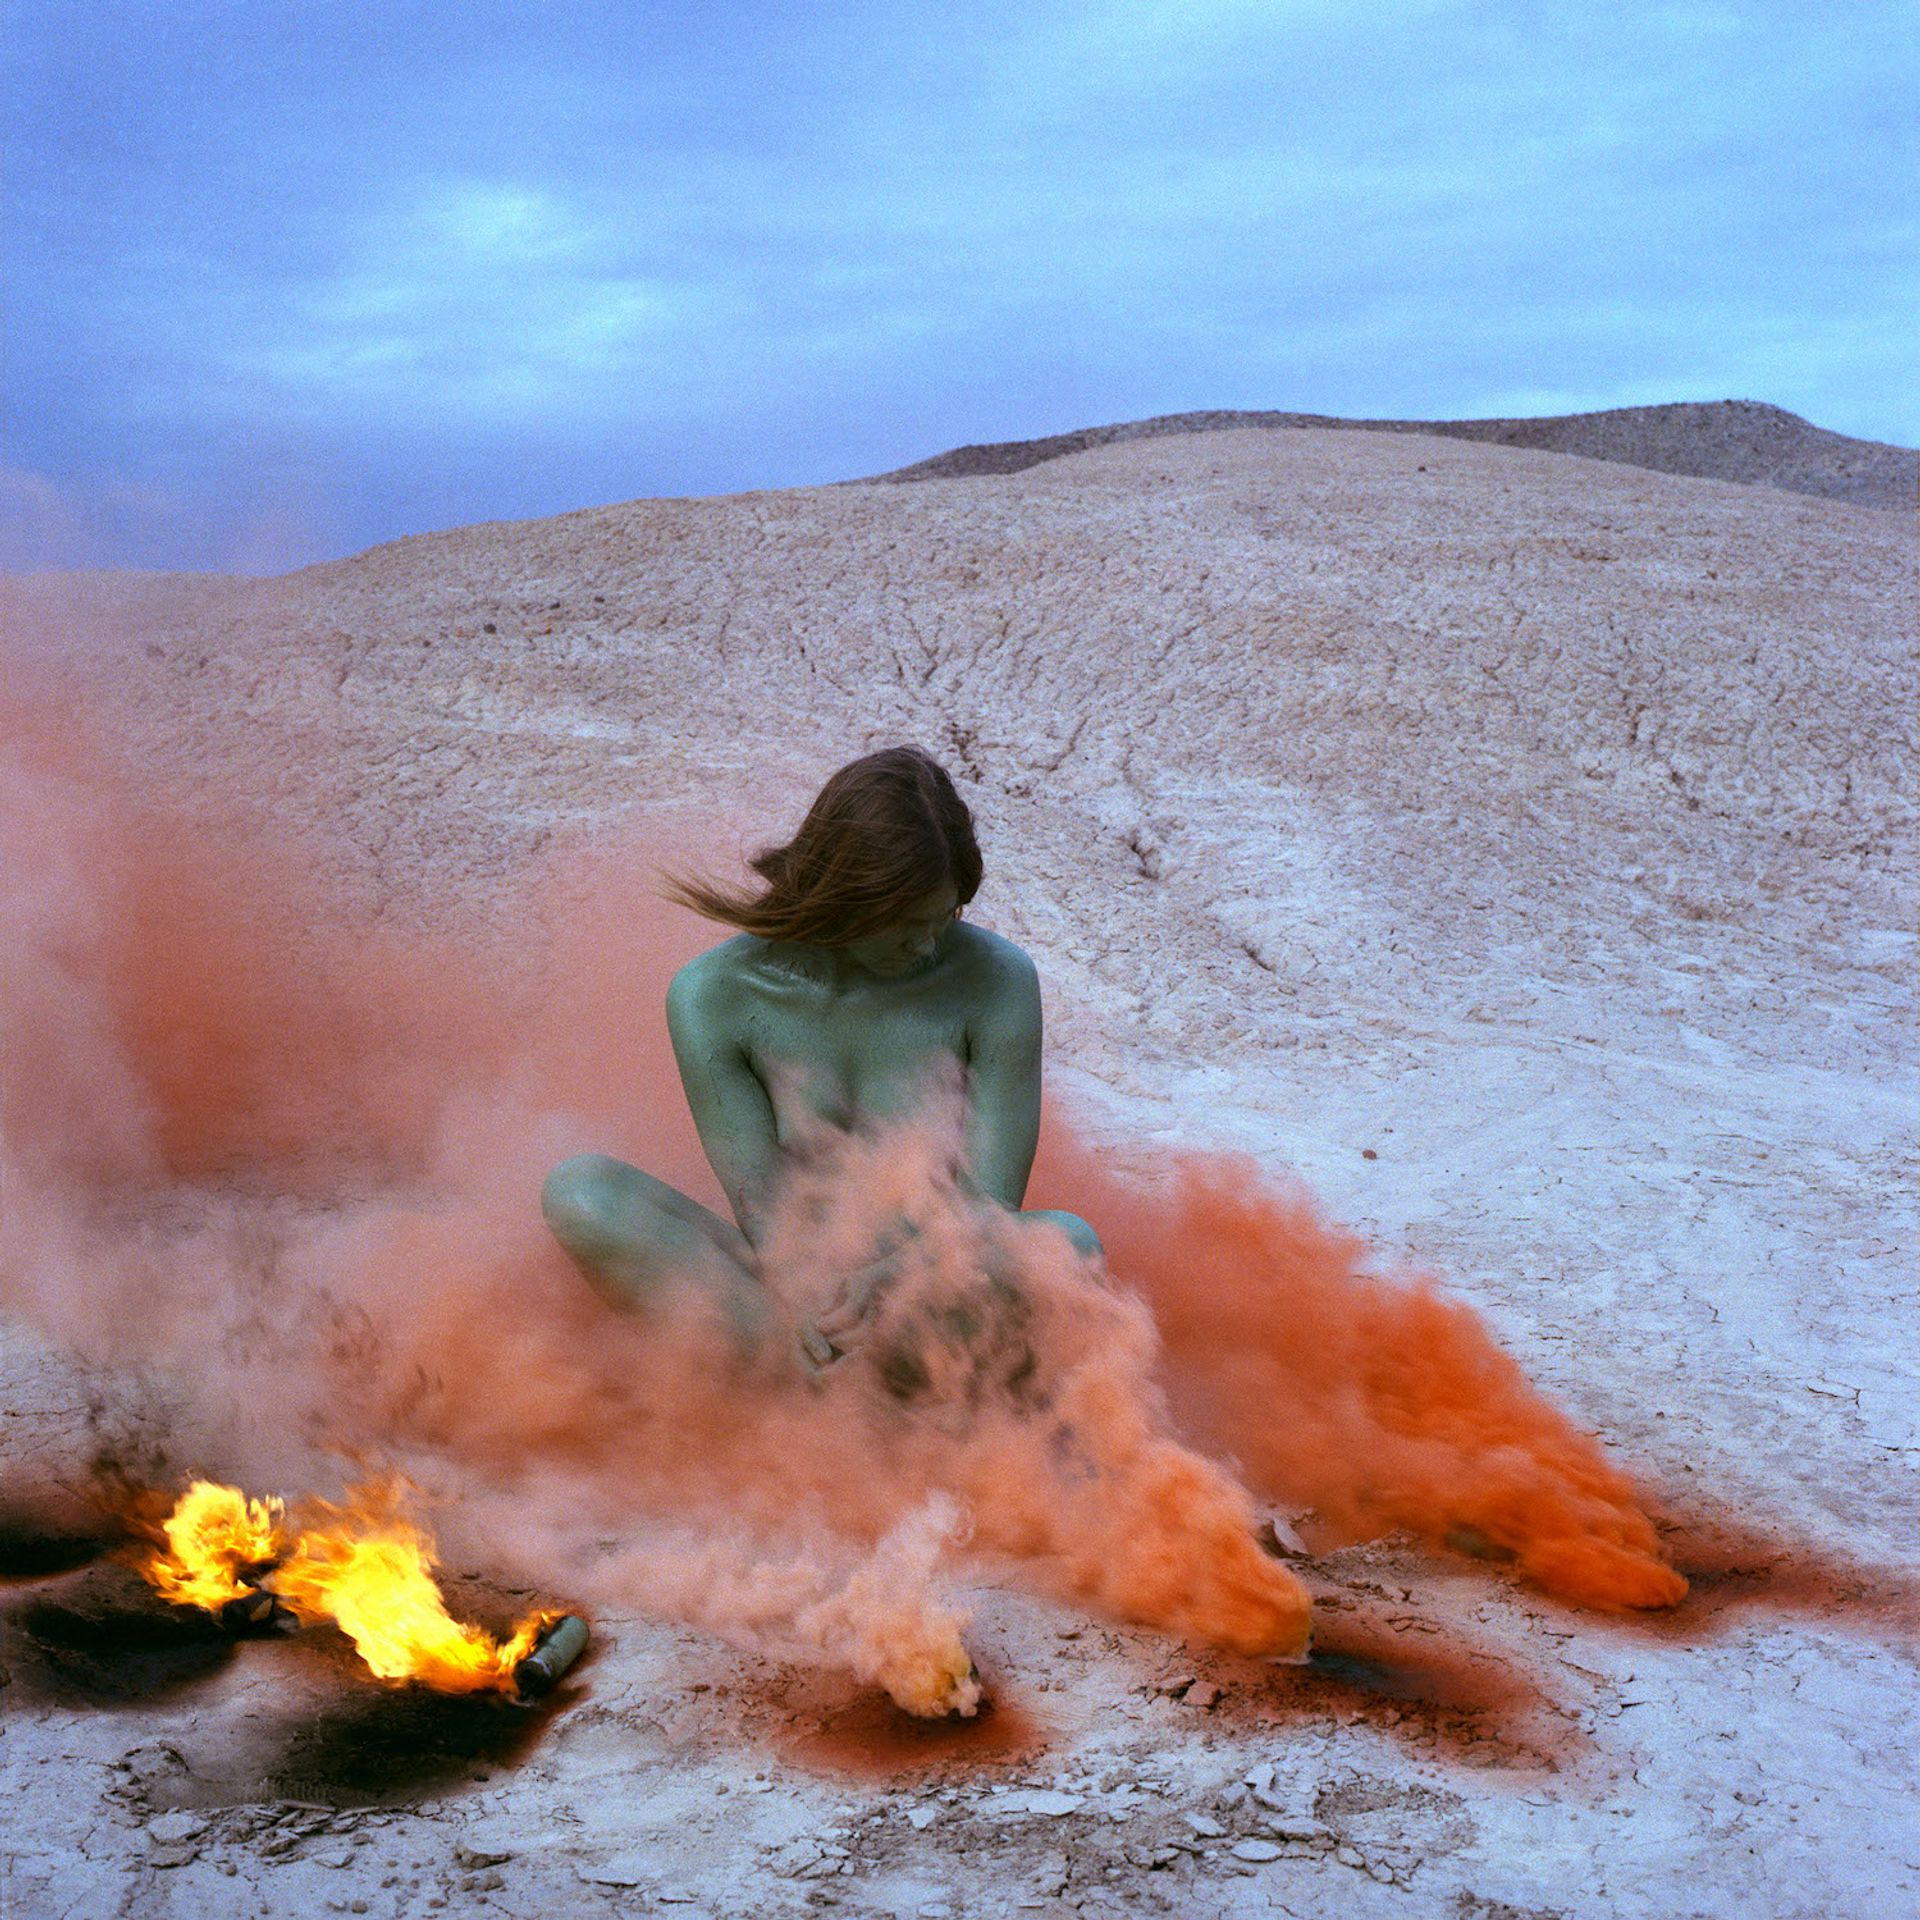 Judy Chicago, Immolation from Women and Smoke, 1972 © Judy Chicago/Artists Rights Society (ARS), New York. Photo courtesy of Through the Flower Archives, the artist, Salon 94 and Jessica Silverman Gallery